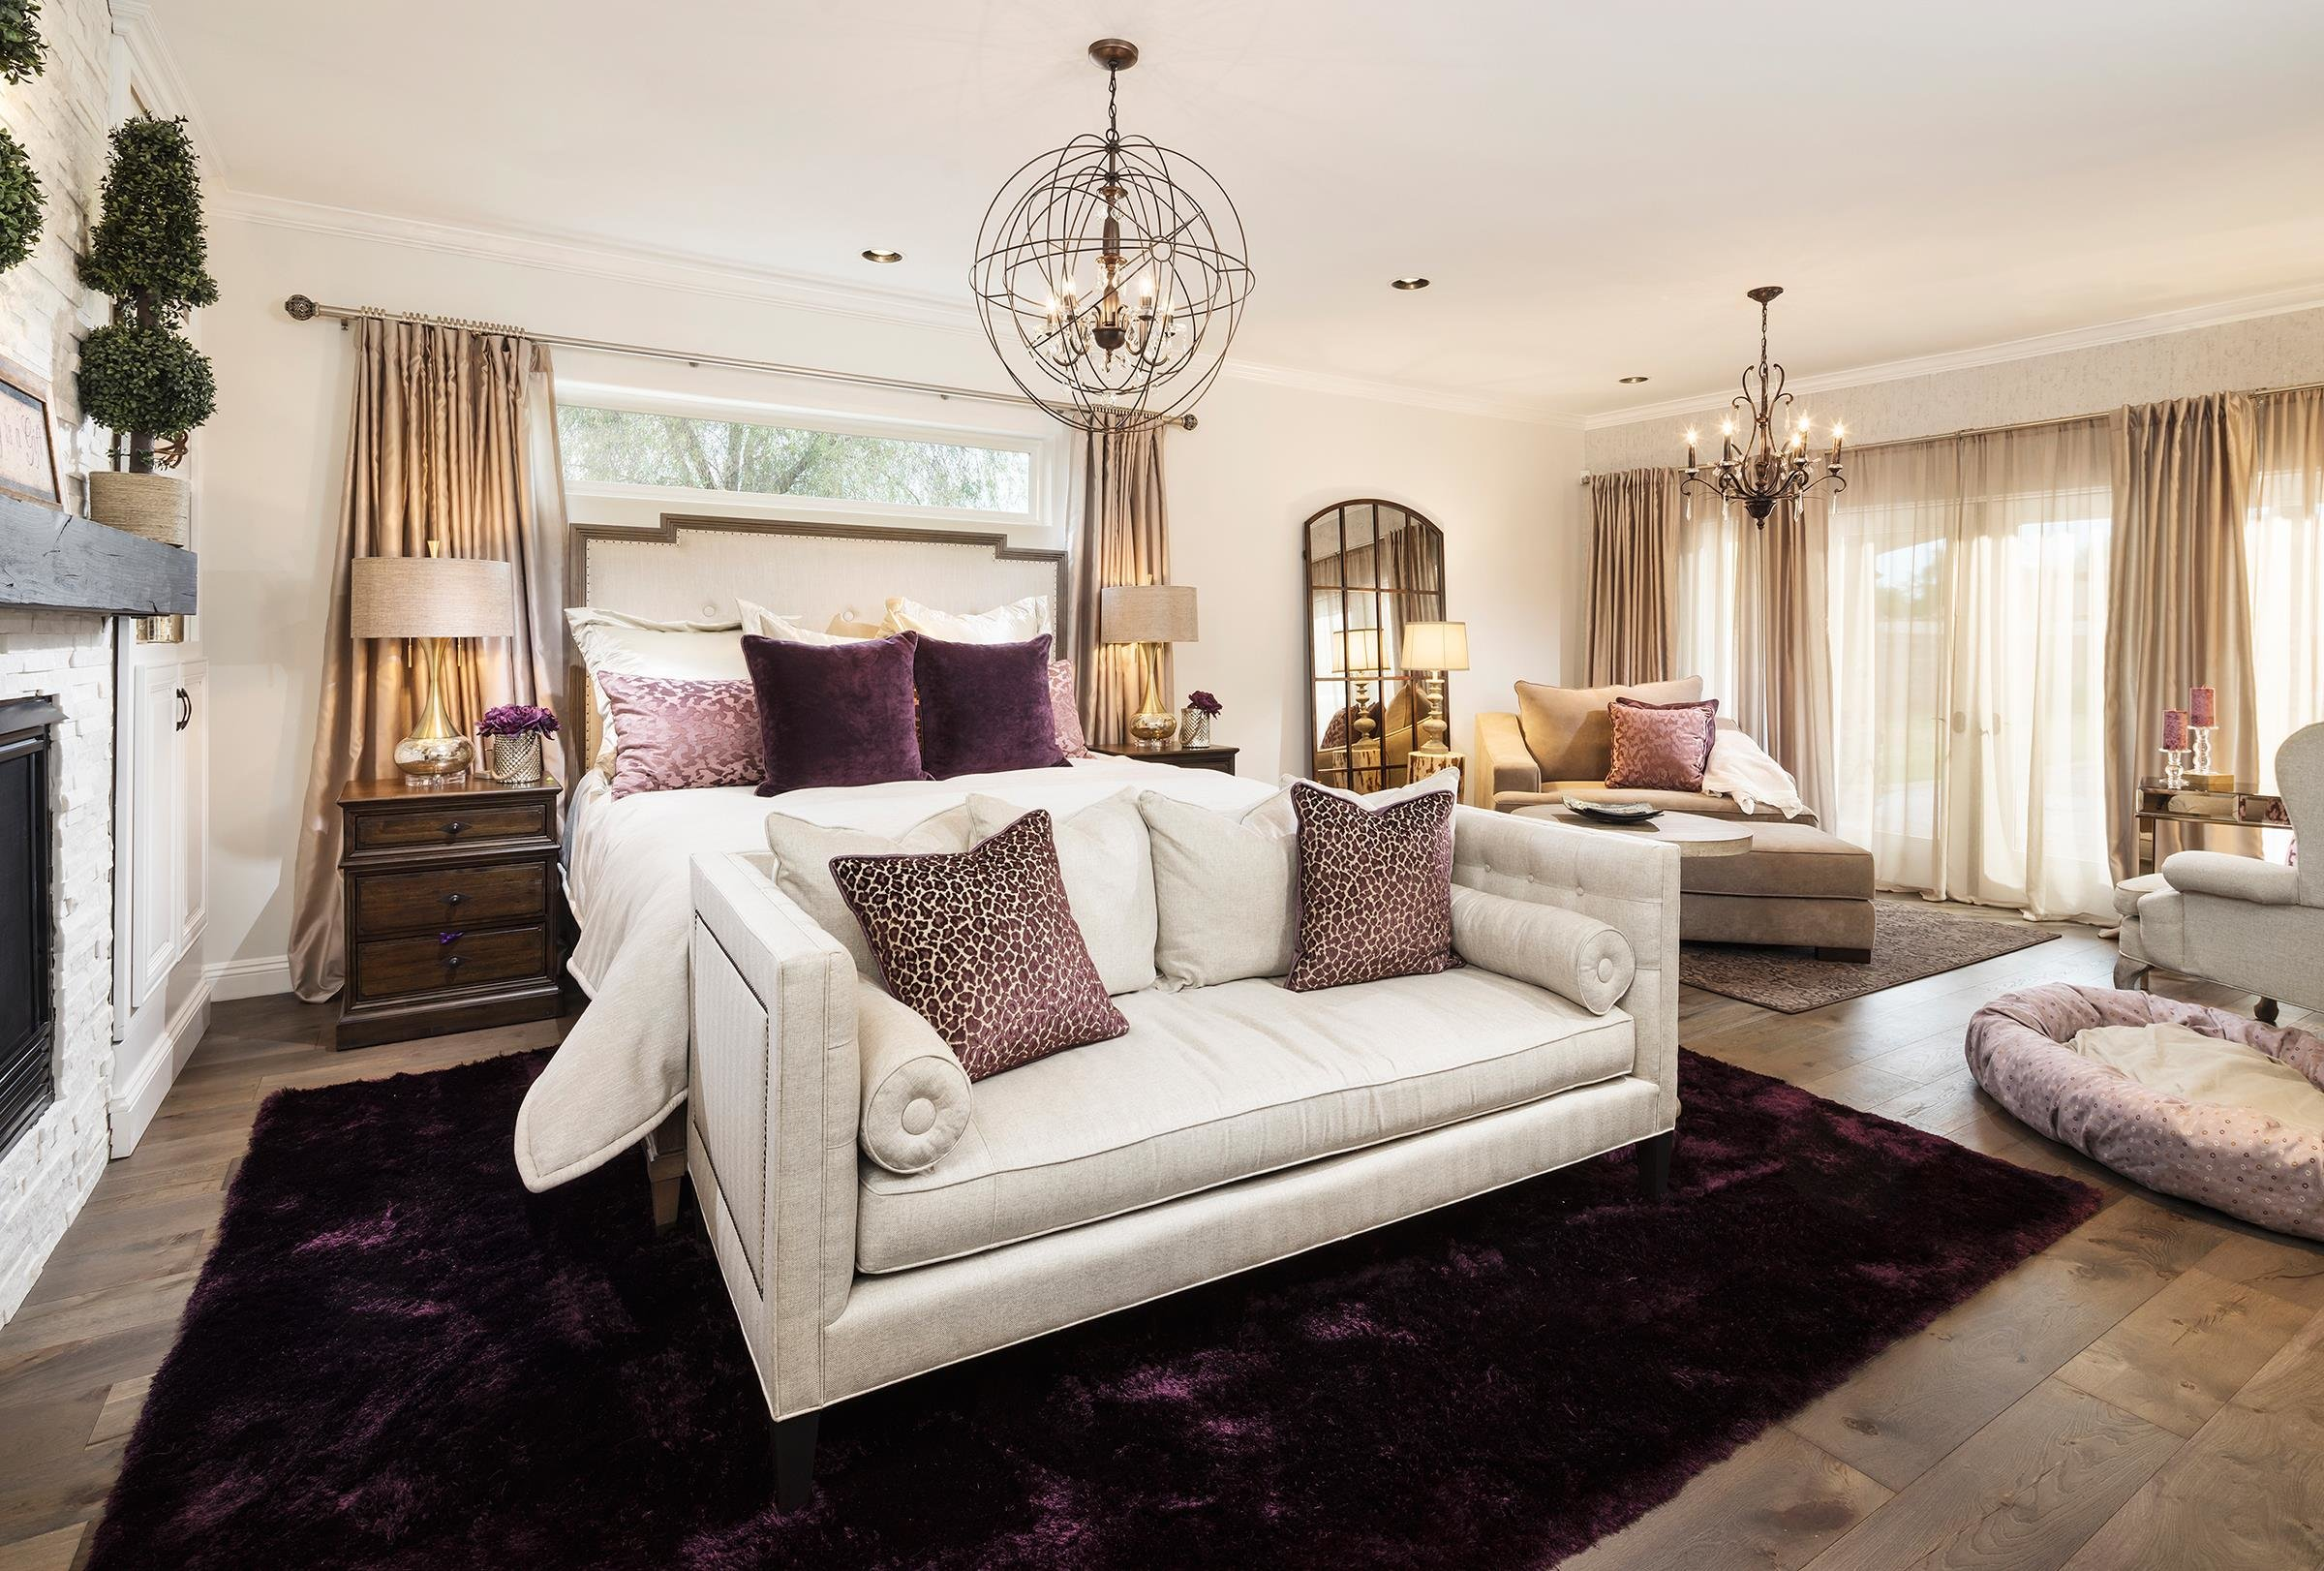 Best Rustic Glam Master Suite Prosource Wholesale With Pictures